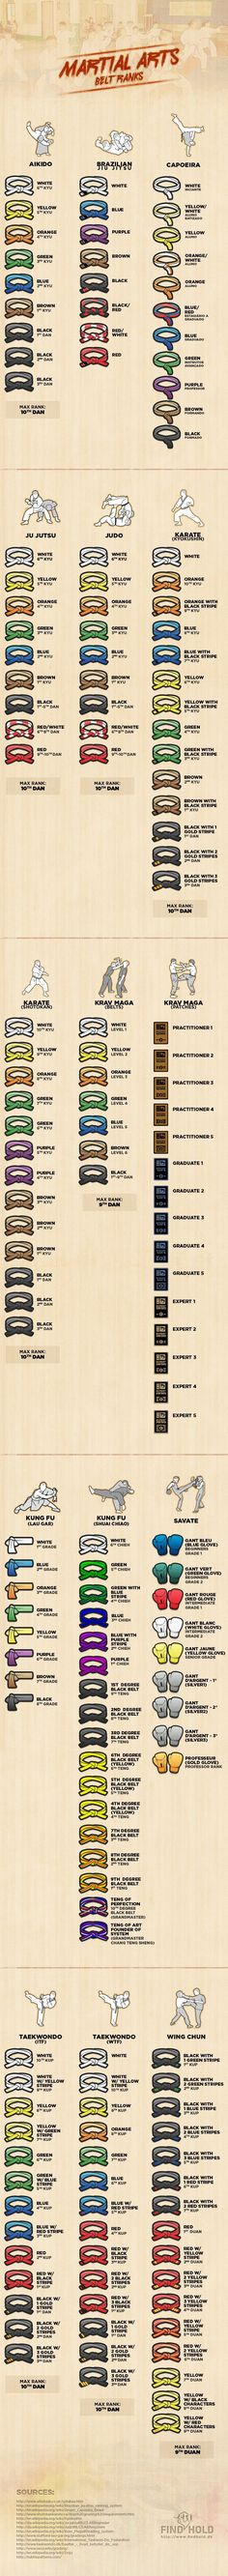 Martial Arts Belt Ranks, Found on http://www.mmaverse.com Pinned by http://kungfumovieshop.com Master Self-Defense to Protect Yourself